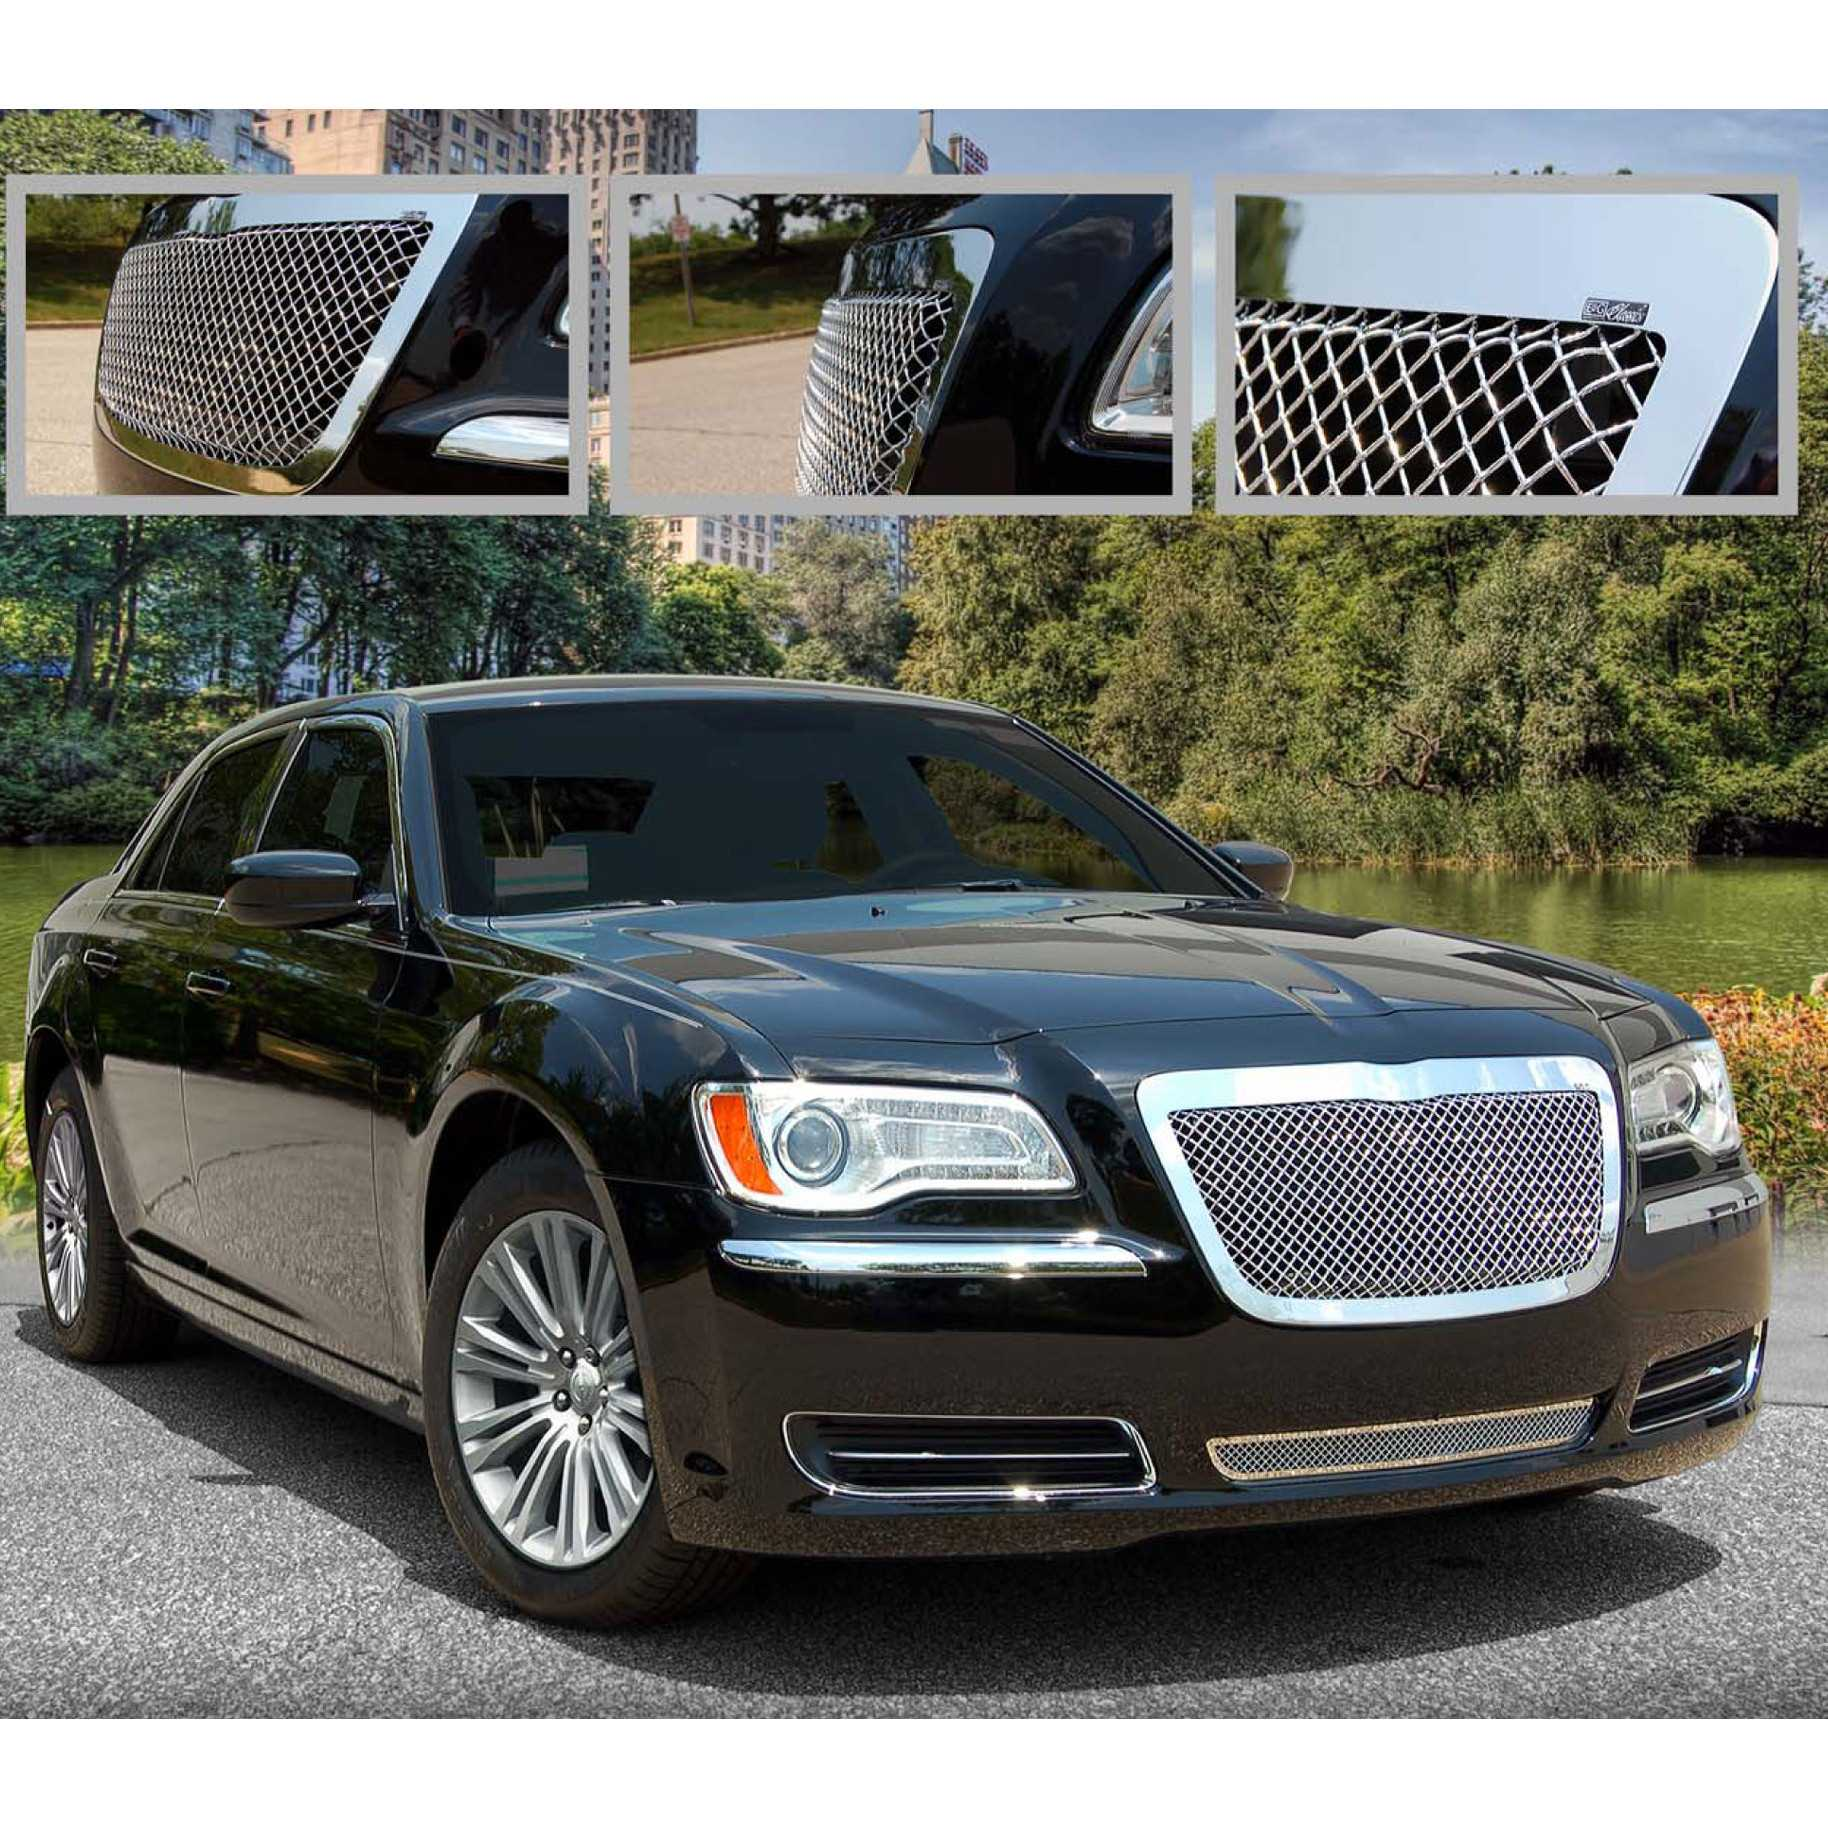 What do you think about those grilles? - Chrysler 300C ...  |Chrysler 300 Grills